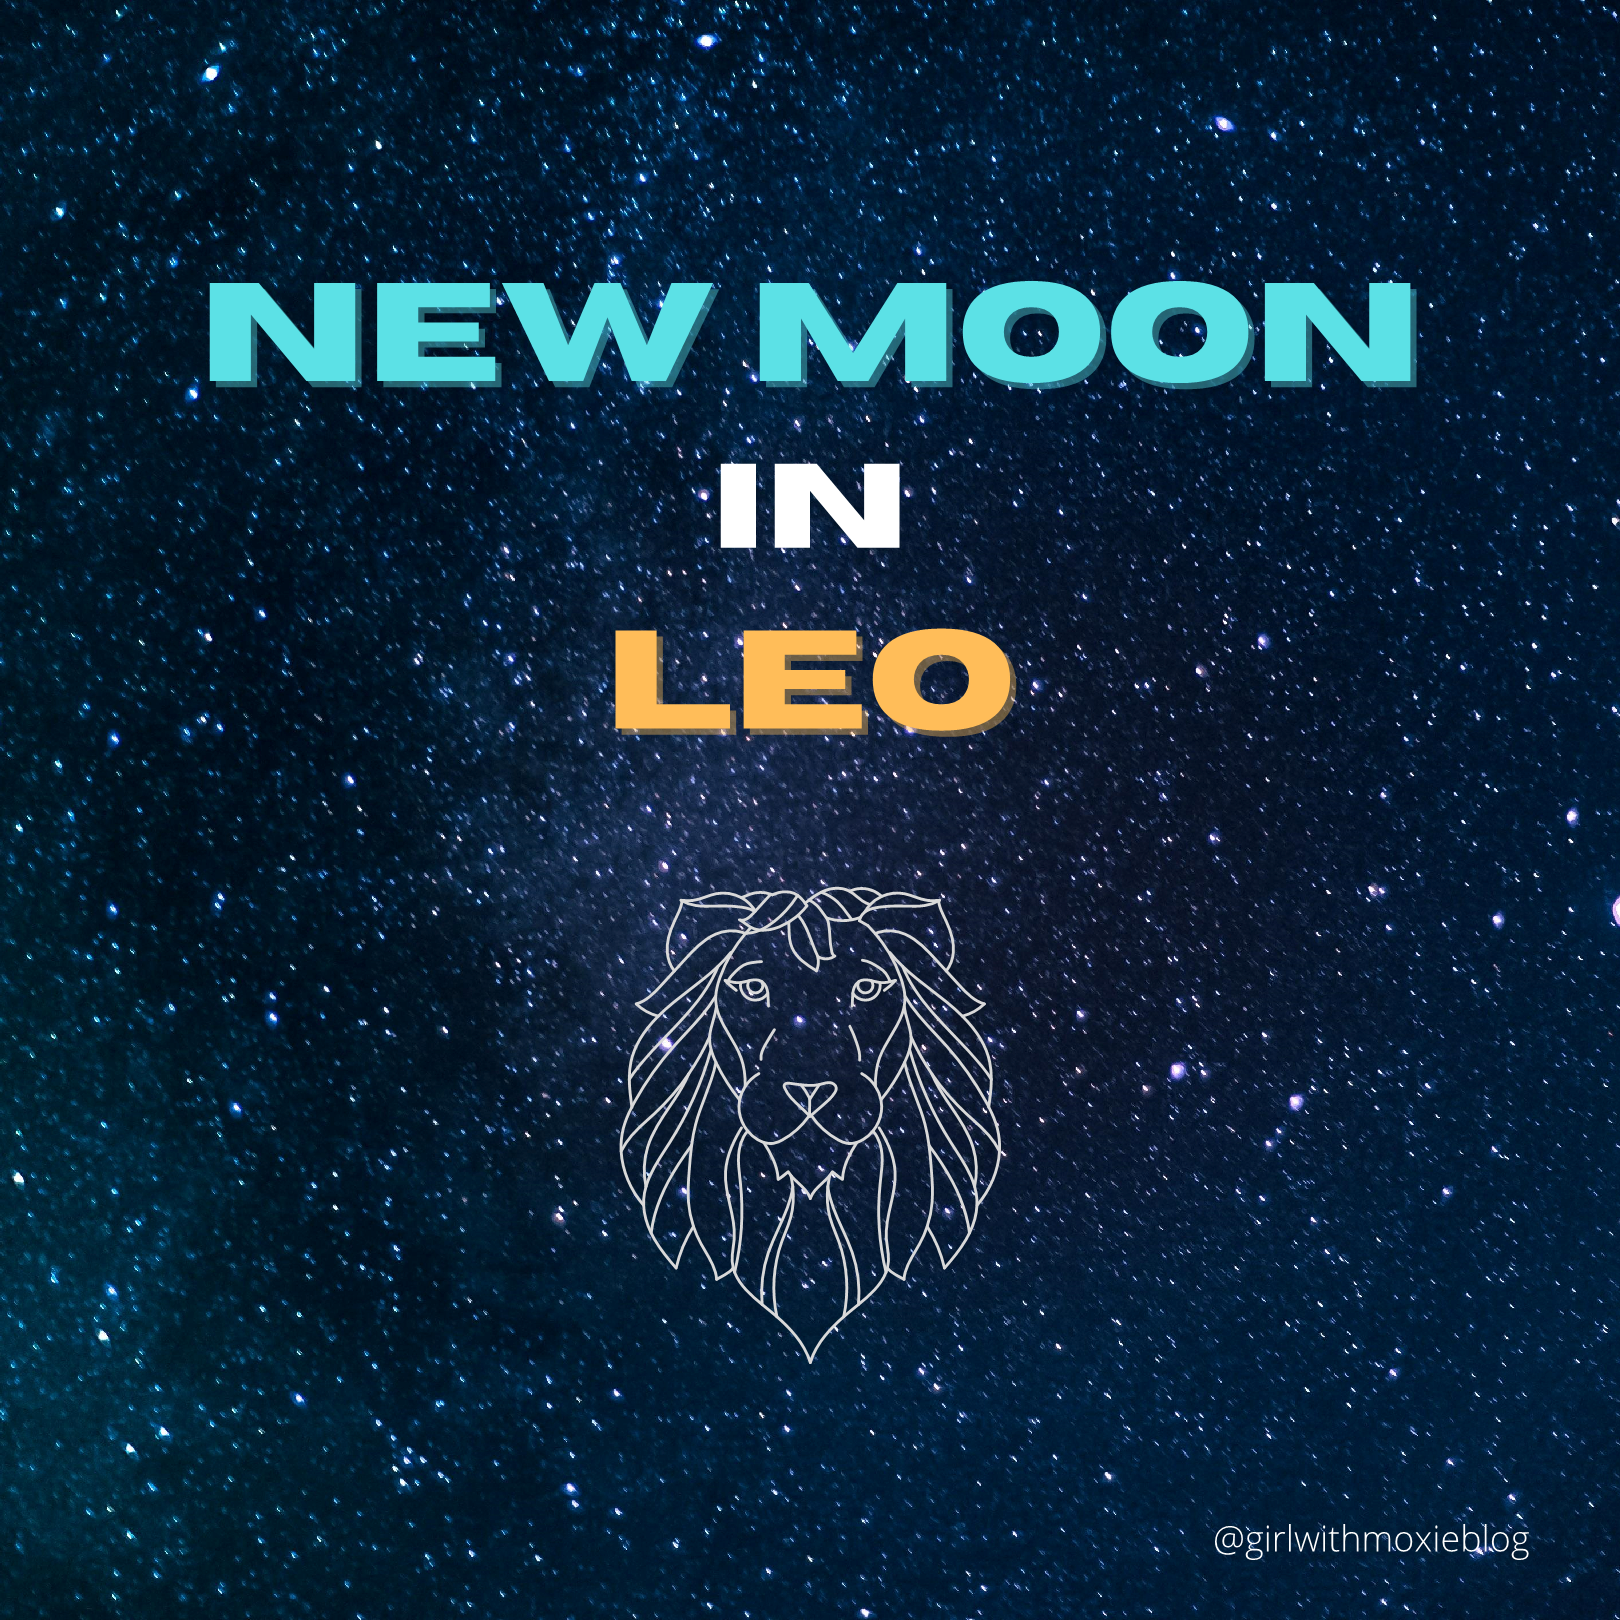 new moon in leo, new moon, leo moon, astrology